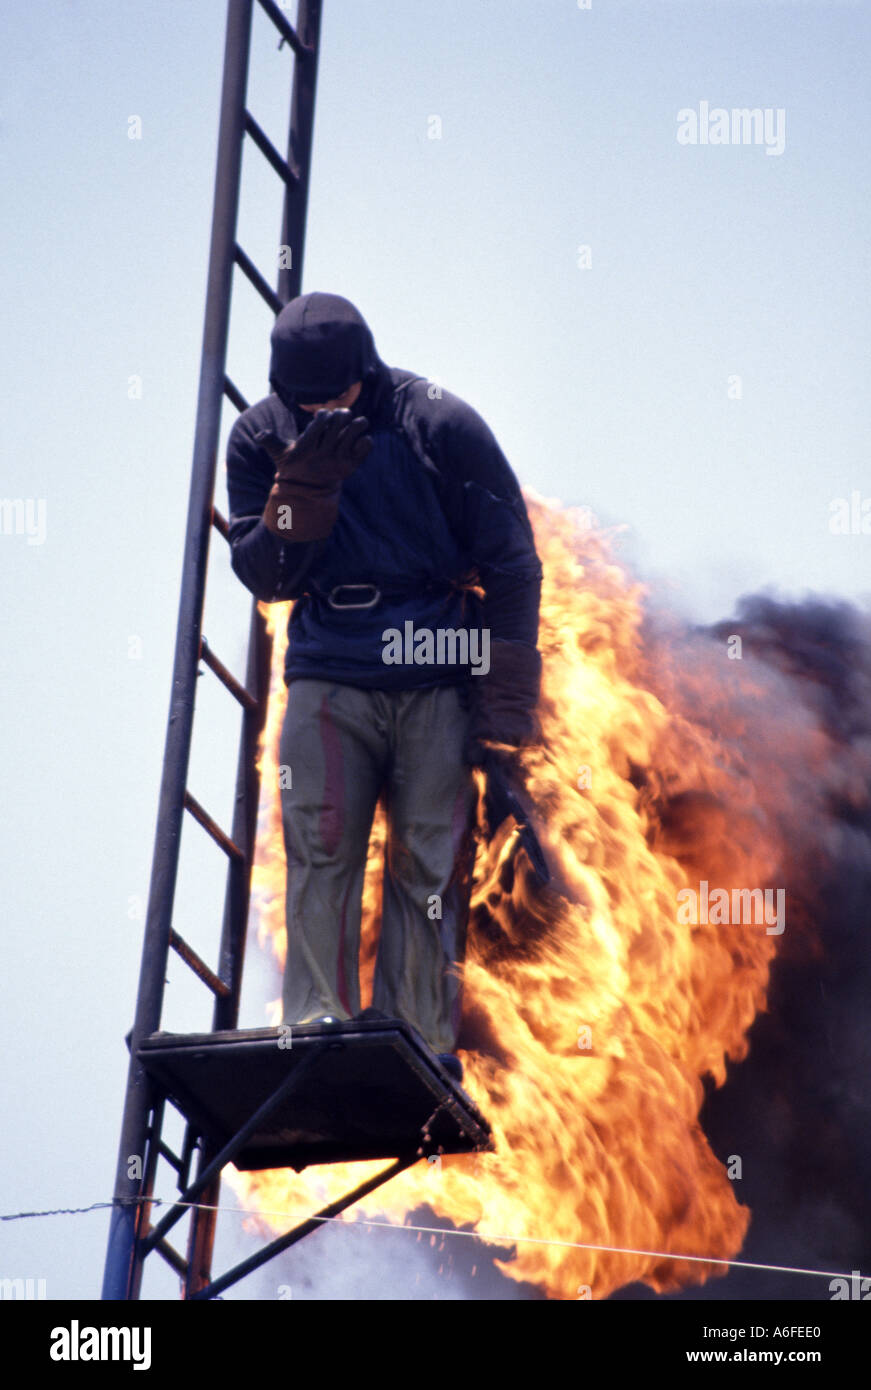 Stunt person at public display about to jump into water tank from top of tower having ignited flammable liquid on cape - Stock Image